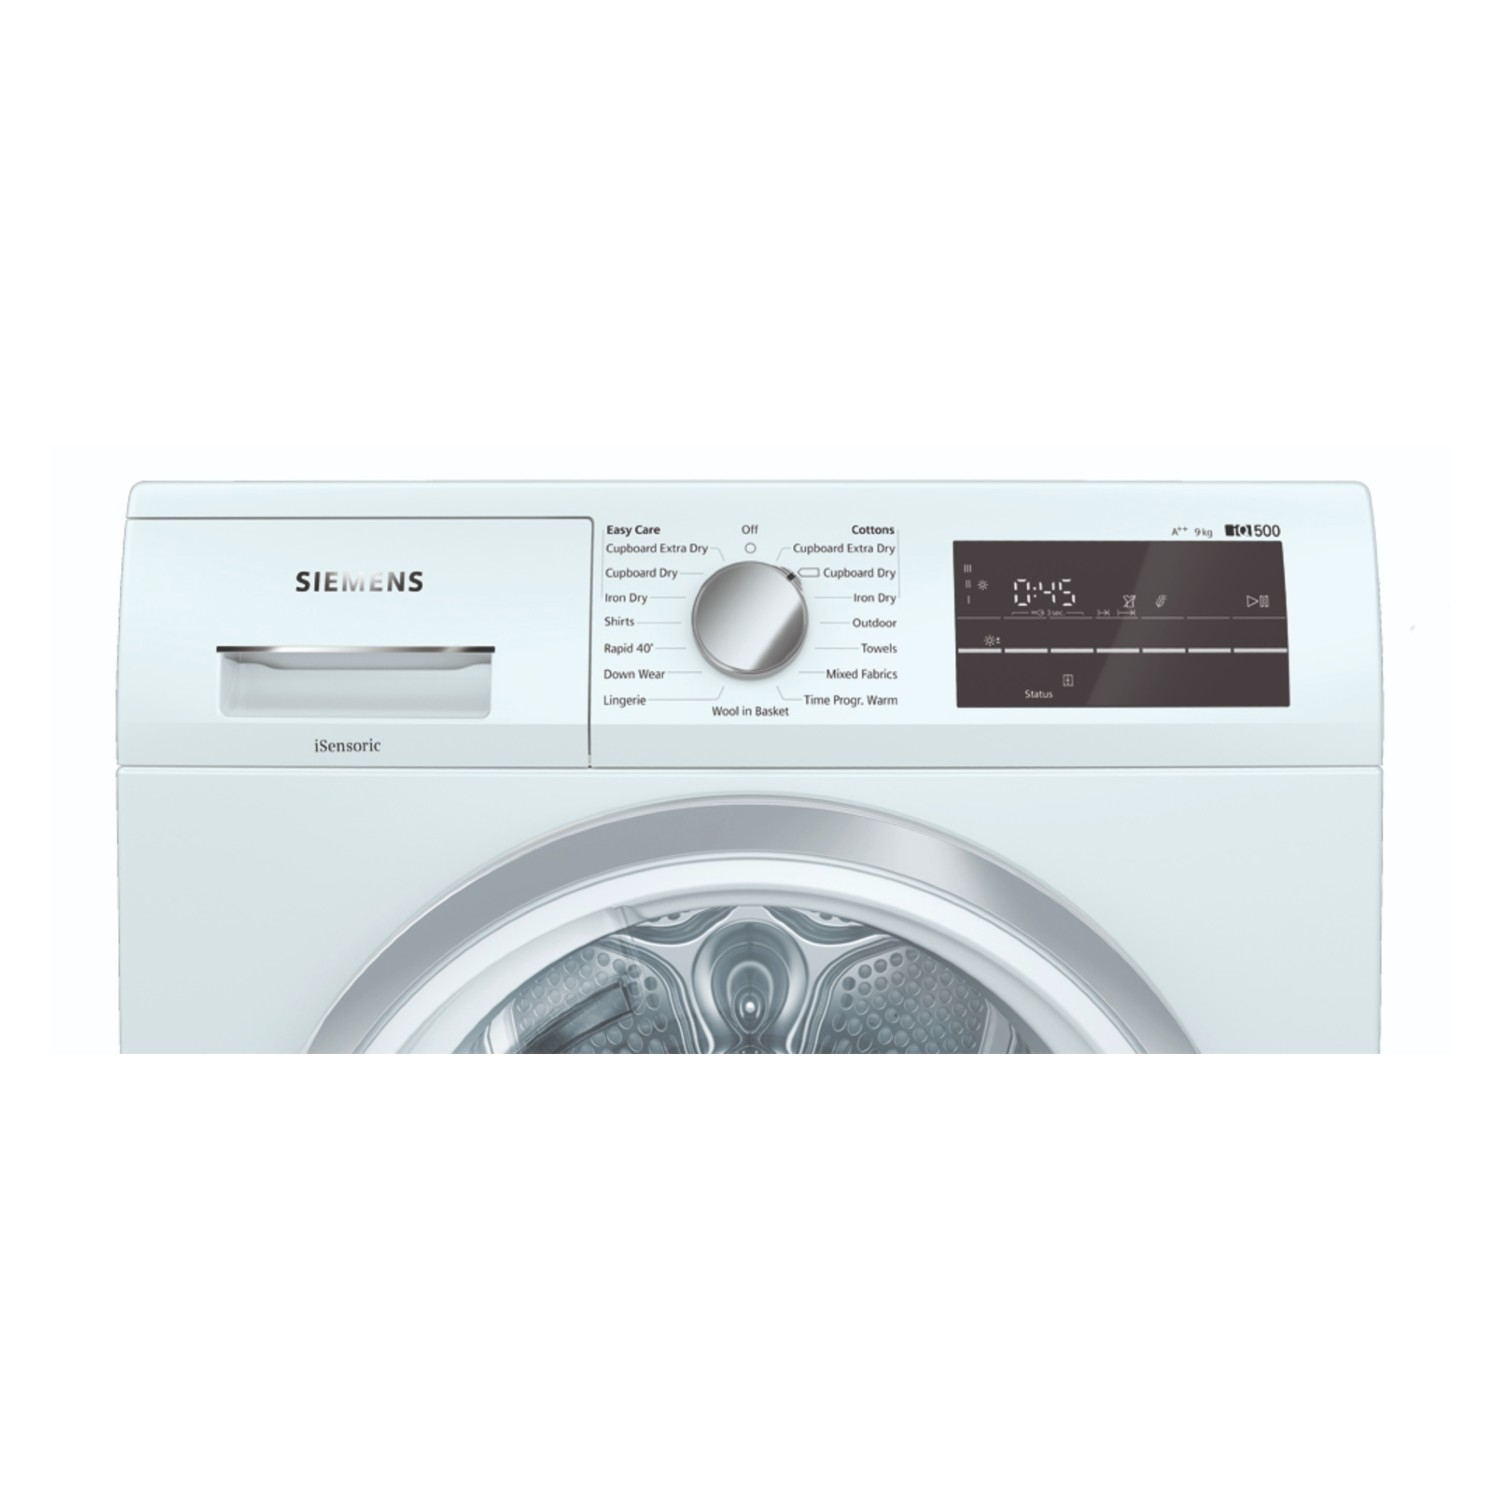 Siemens extraKlasse WT47RT90GB iQ500 9kg Heat Pump Tumble Dryer - White - 2